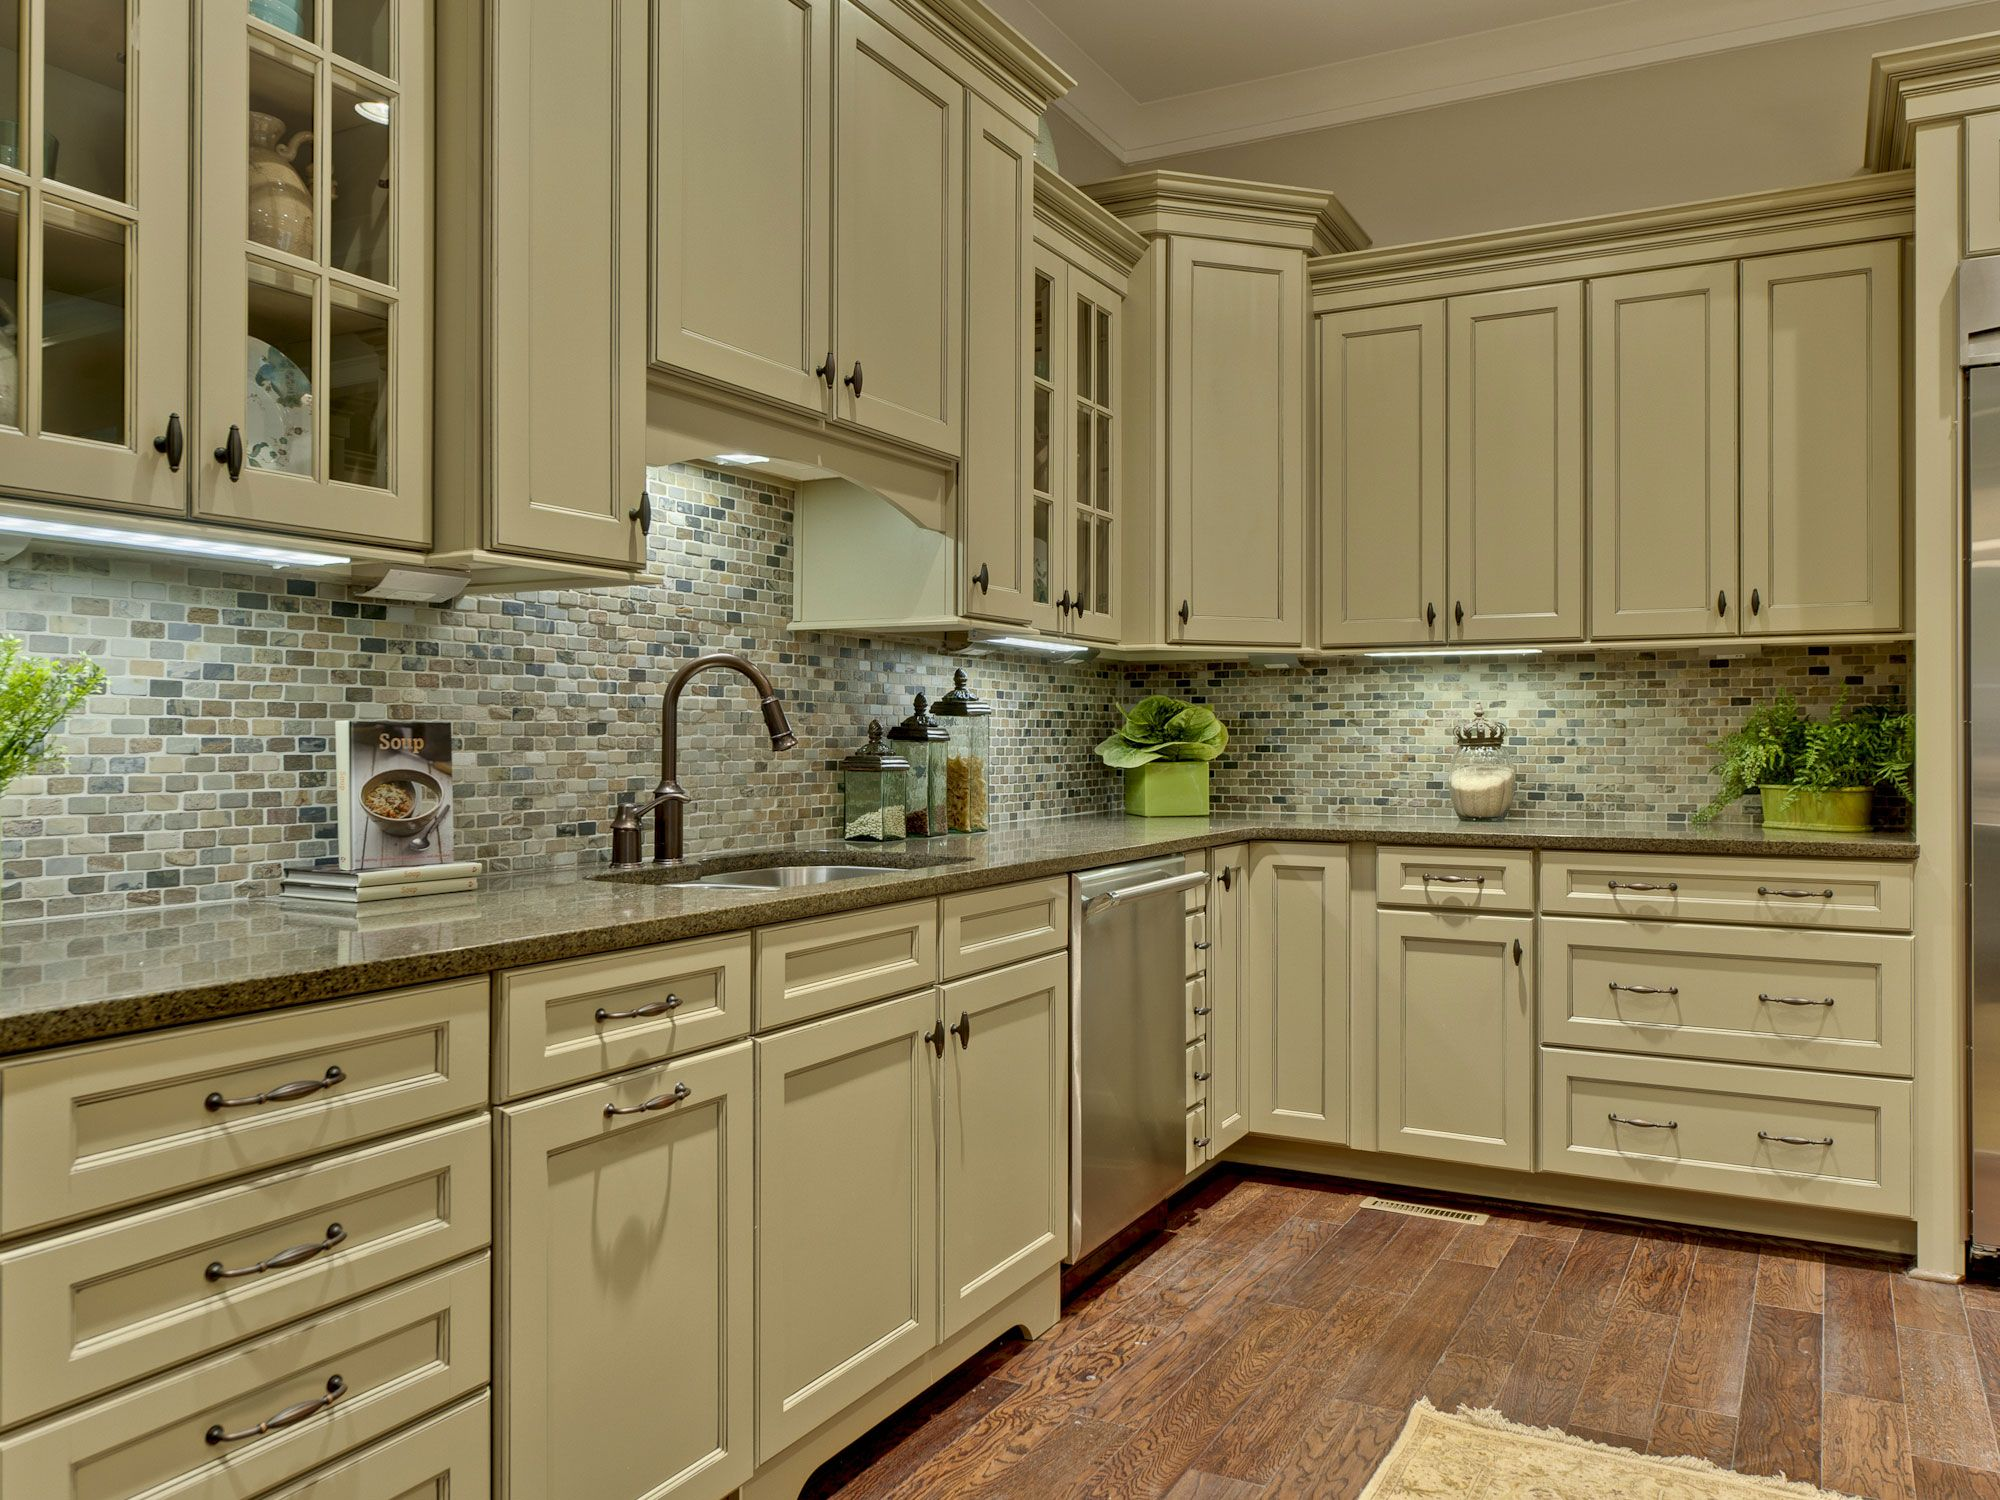 Amazing Refinished Green Kitchen Cabinets To White Painted Kitchen Cabinetry Set With Ceramic